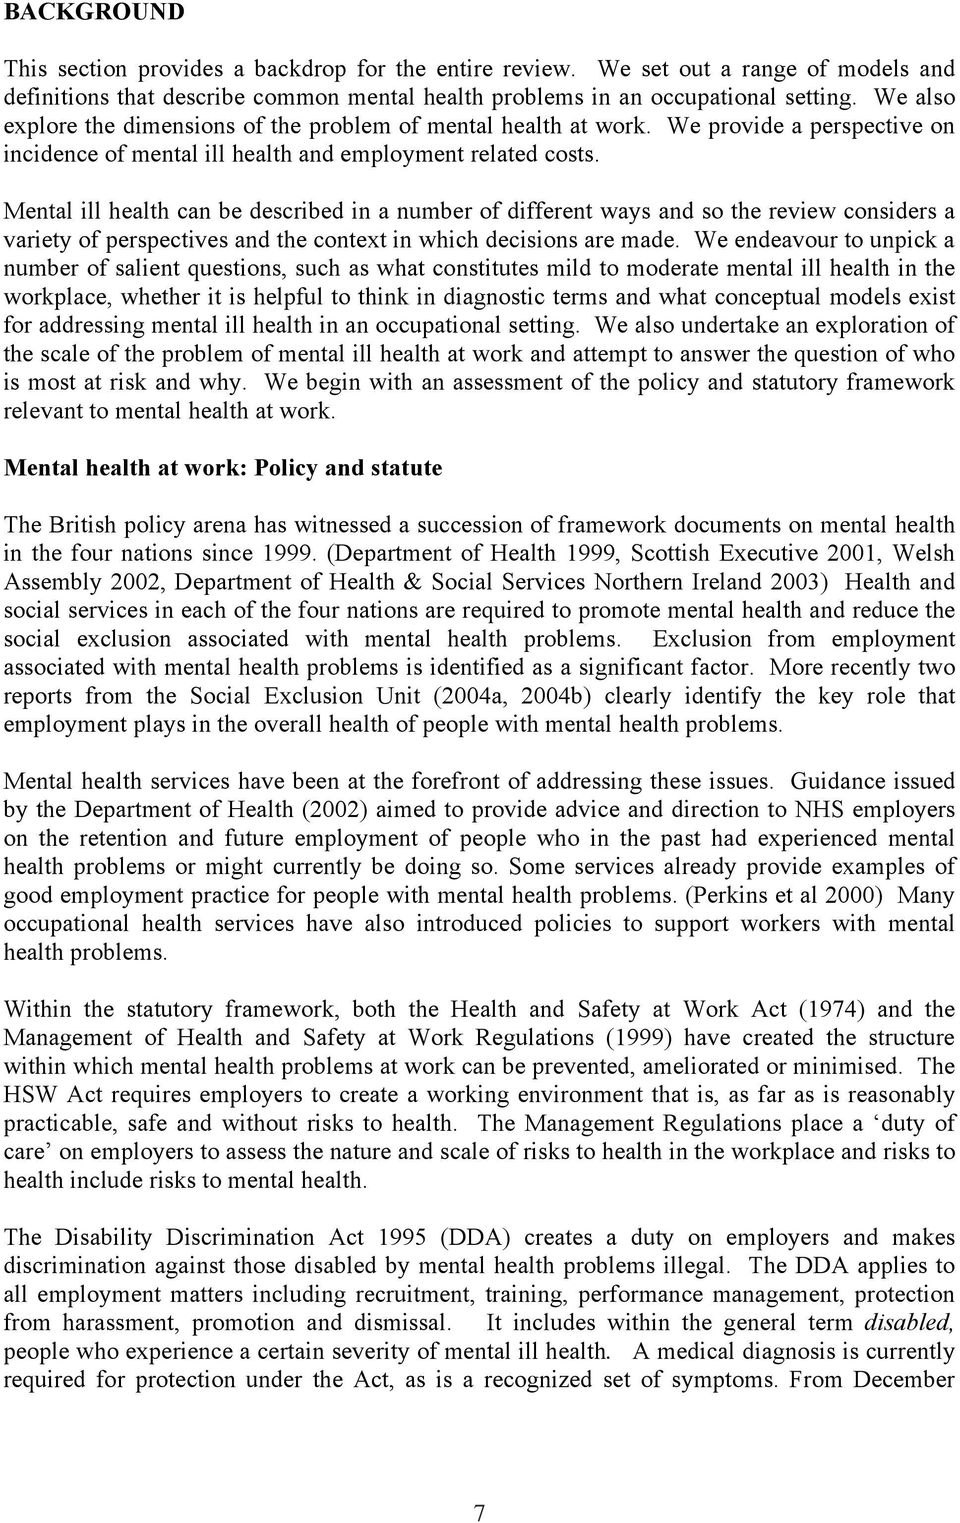 Mental ill health can be described in a number of different ways and so the review considers a variety of perspectives and the context in which decisions are made.